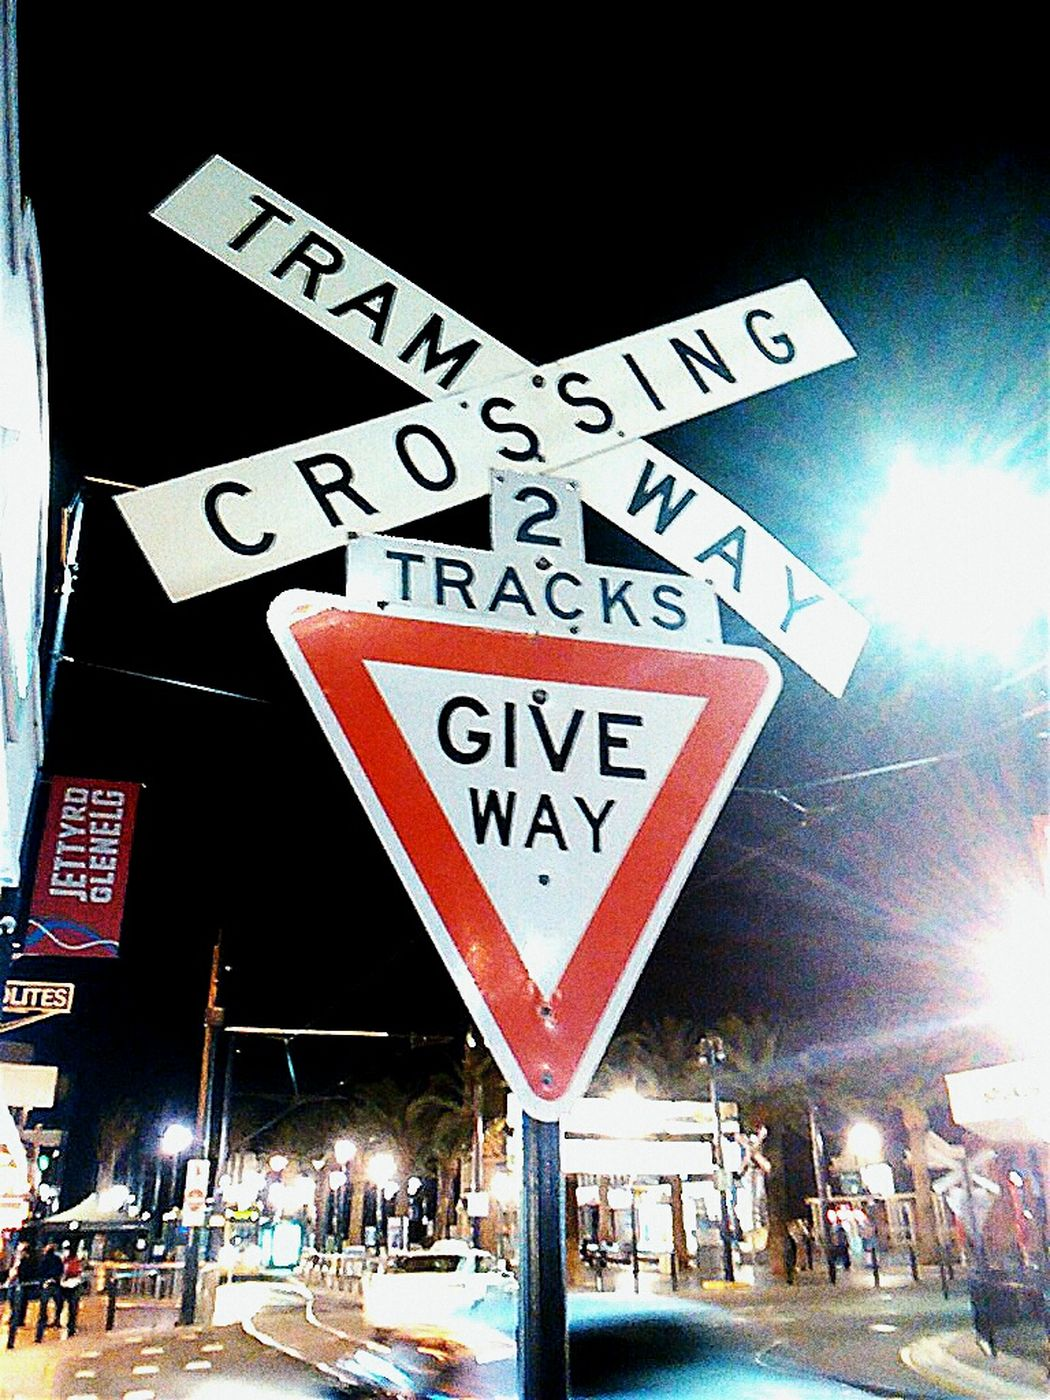 Tramway Crossing Tramway Trams Give Way Signs Tram Signs Tramway Sign Tram Tracks Signporn Signstalkers Sign